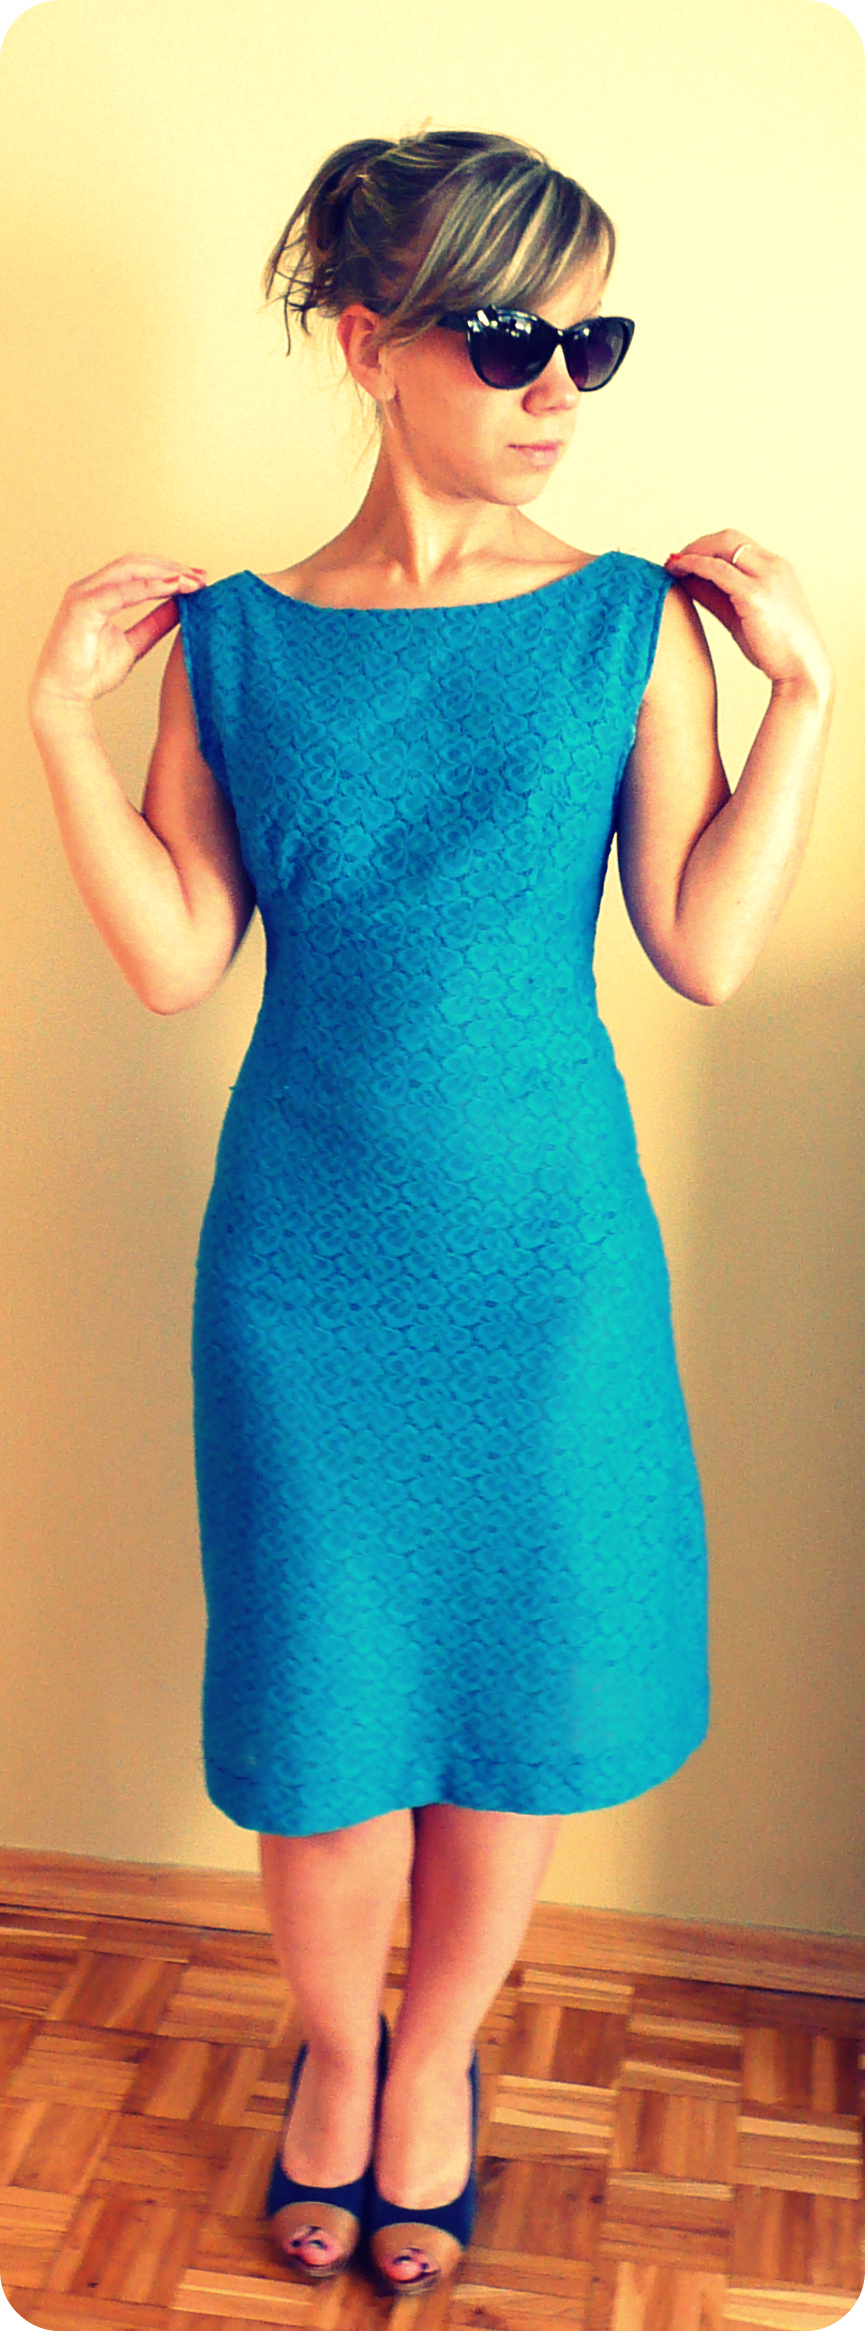 Find great deals on eBay for blue eyelet dress. Shop with confidence.